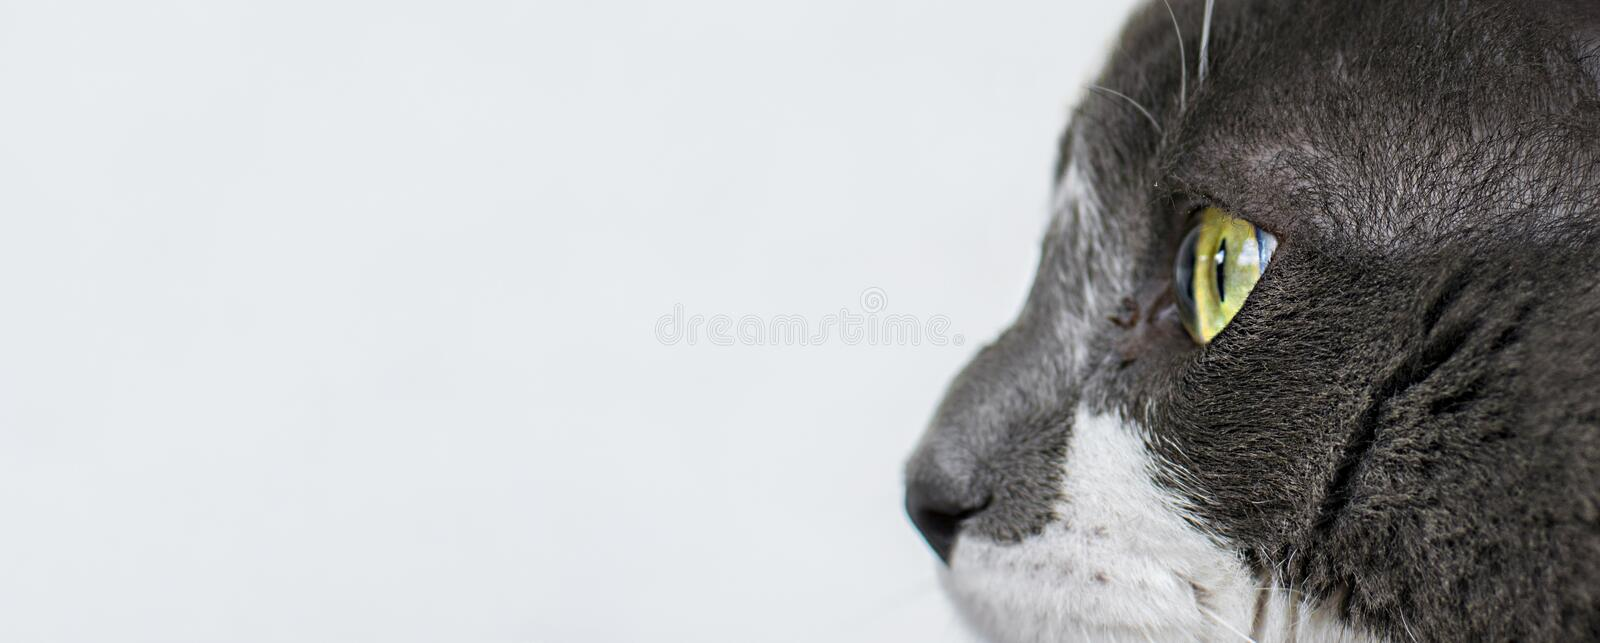 Close up view of beautiful green cat& x27;s eye. Gray and white cat on white background. Beautiful textured fur. Macro. Pets concept animal black closeup cute stock photos